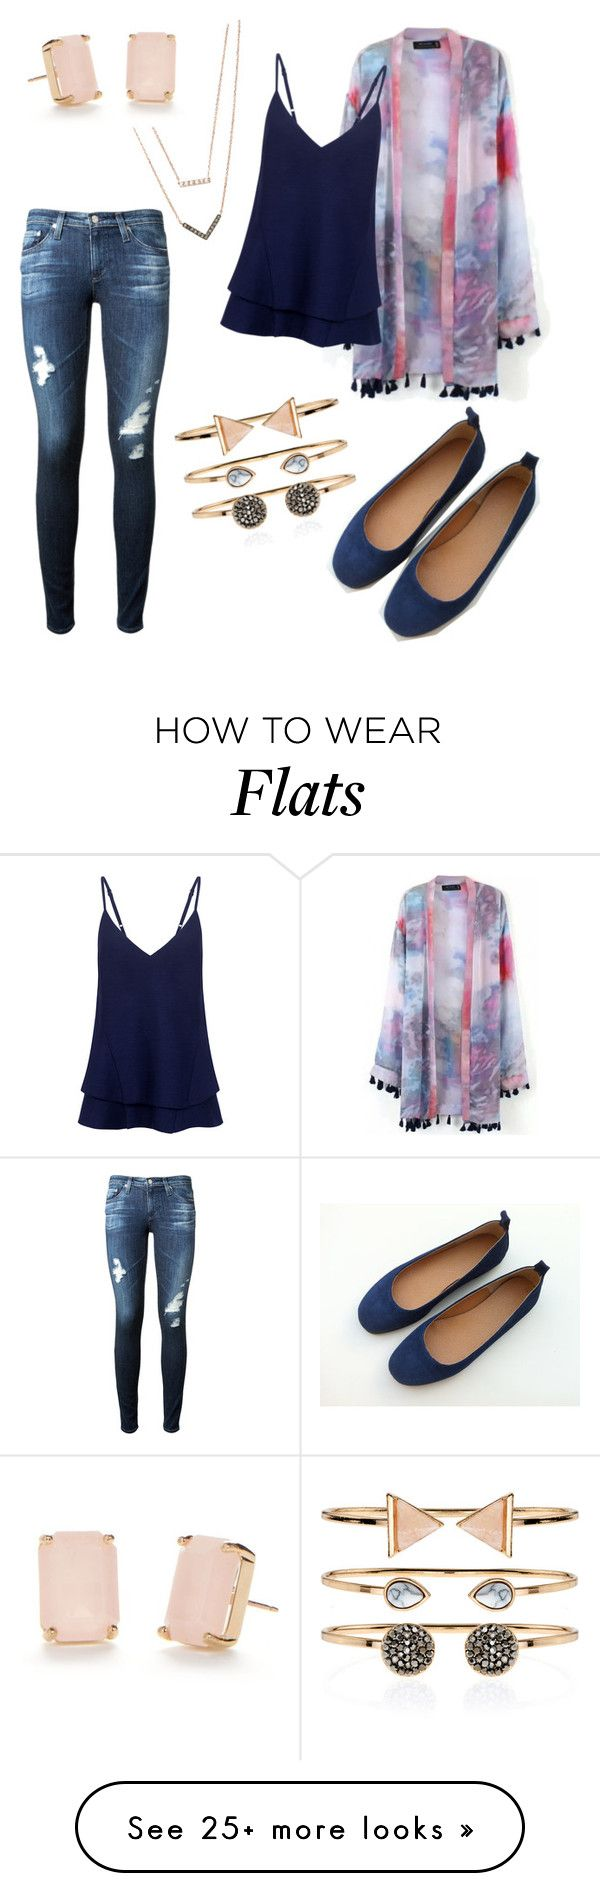 """Dreams"" by lyricalbuddha on Polyvore featuring Michael Kors, C/MEO COLLECTIVE, AG Adriano Goldschmied, Accessorize and Kate Spade.   Pinterest // smilesandhe4050// Instagram: Jessica_101xo"